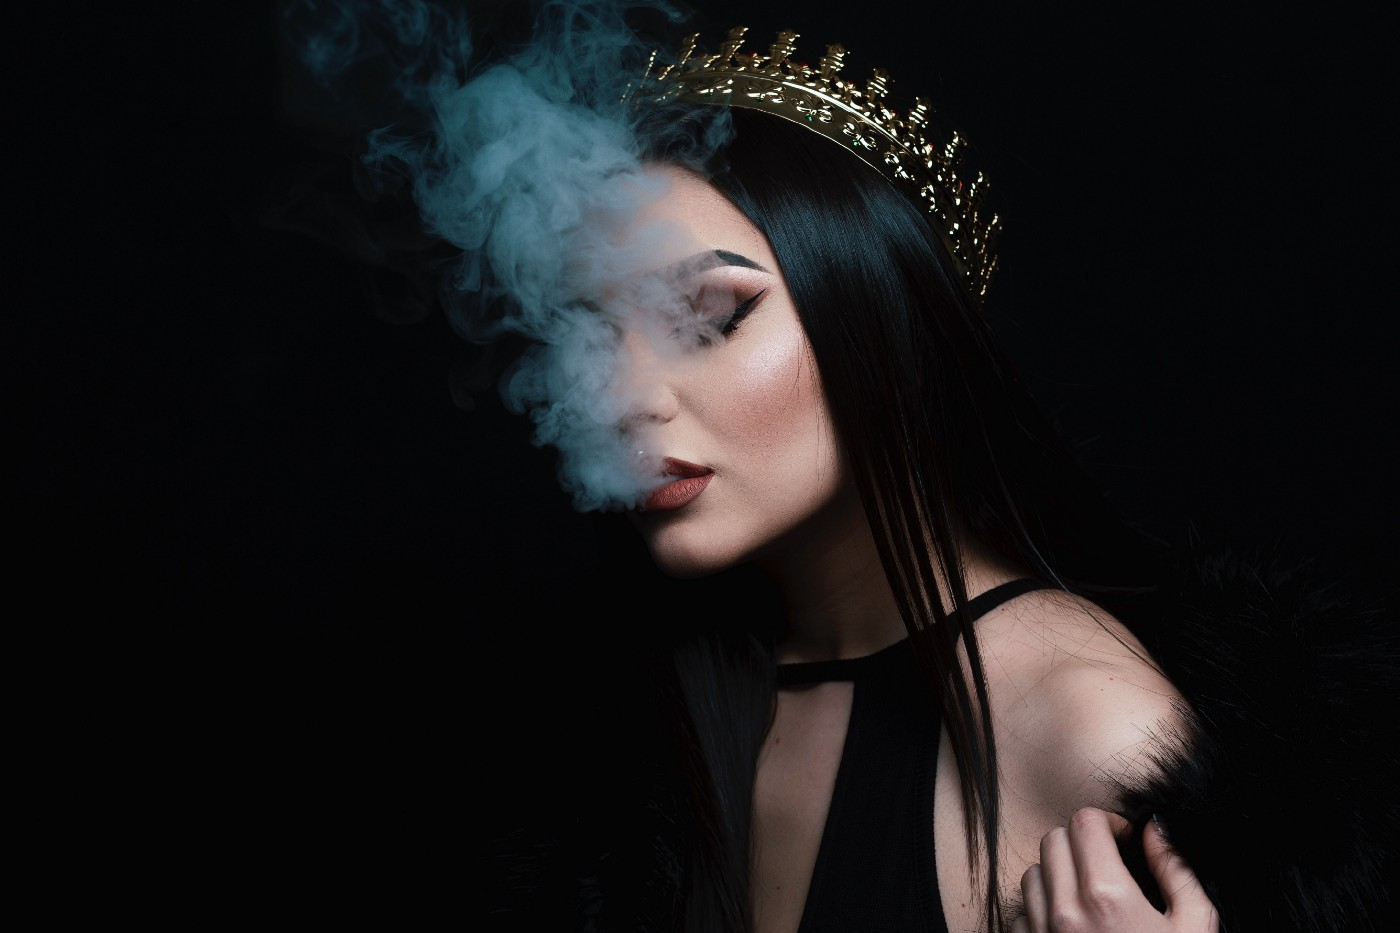 Sophisticated woman wears black formal dress and crown on sleek black hair. She wears dramatic, immaculate makeup. Smoke rises from her mouth.